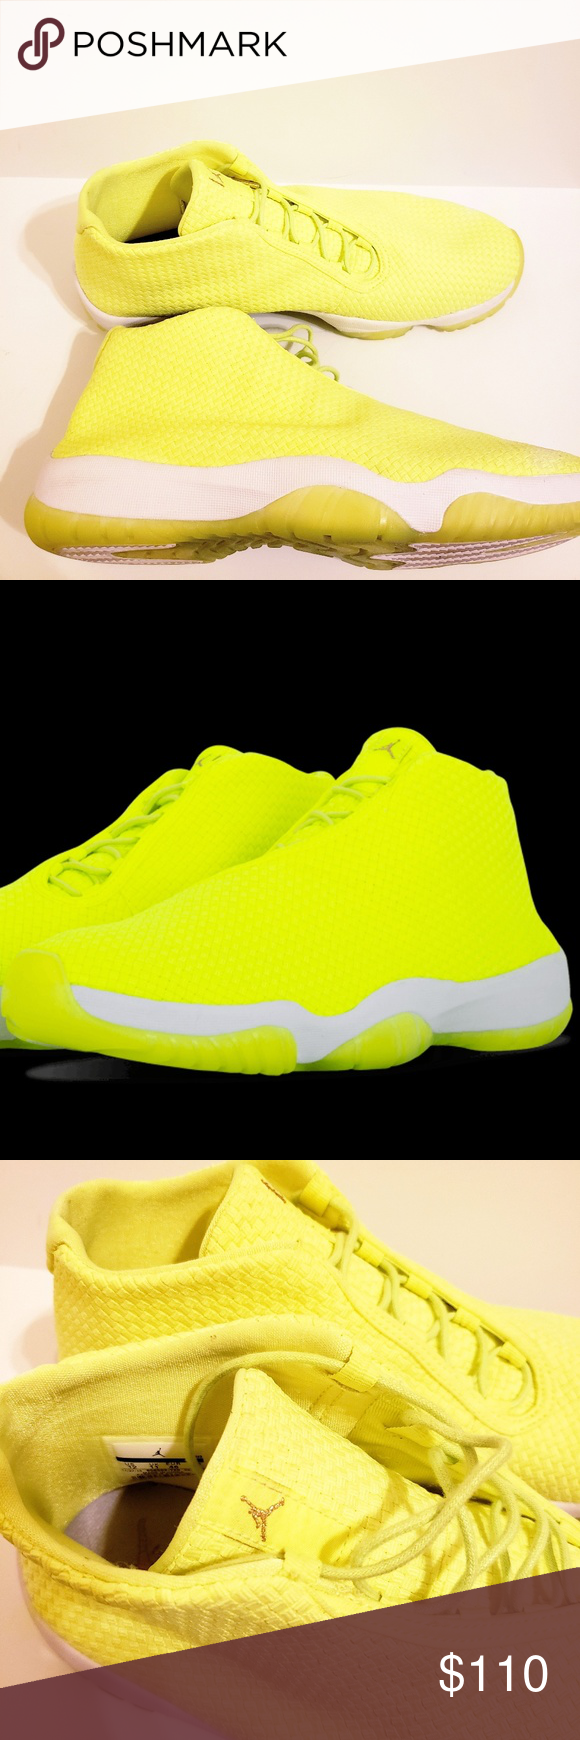 acfce953ee2bcb NWOT Air Jordan Future Volt Brand New without box The lifestyle-minded Jordan  Future receives its boldest look ever with this colorway in Volt with  bright ...